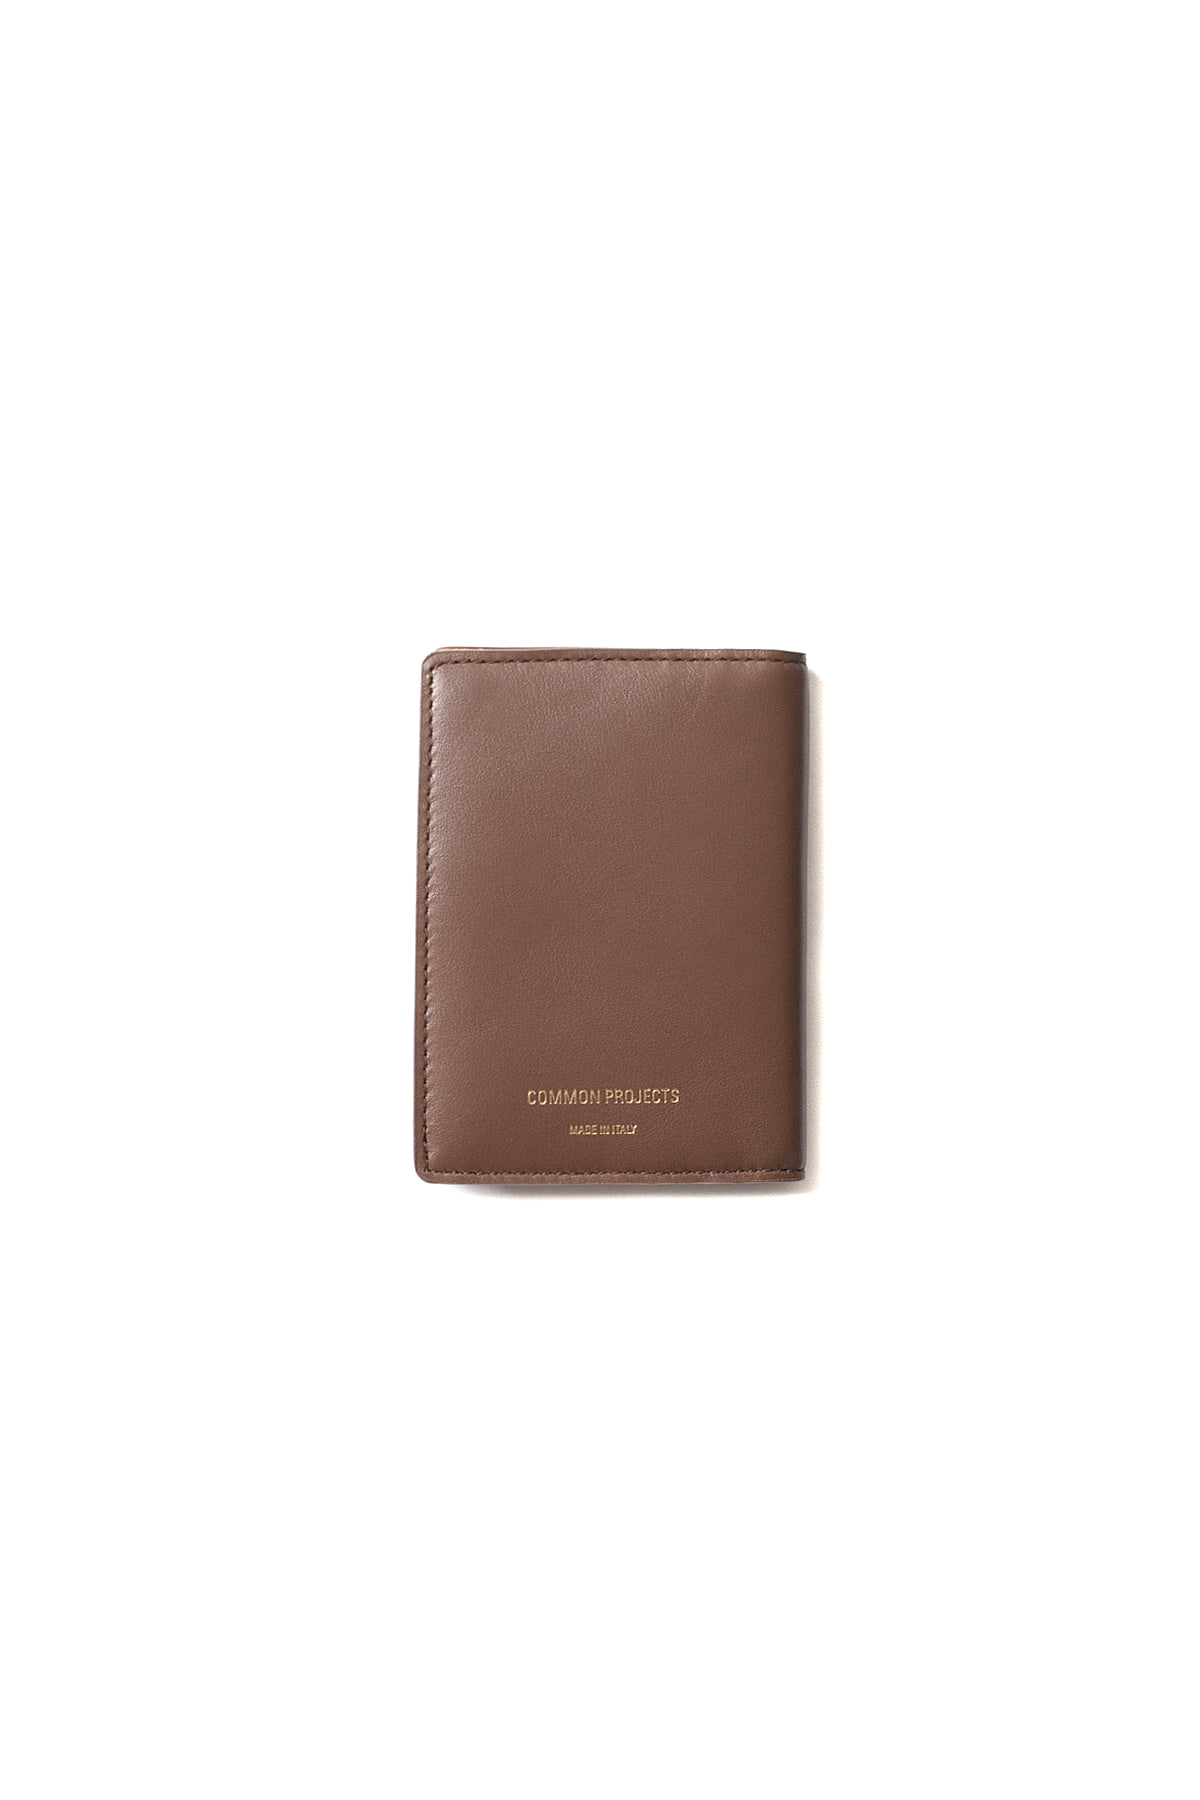 Common Projects : Card Holder Wallet (Brown)